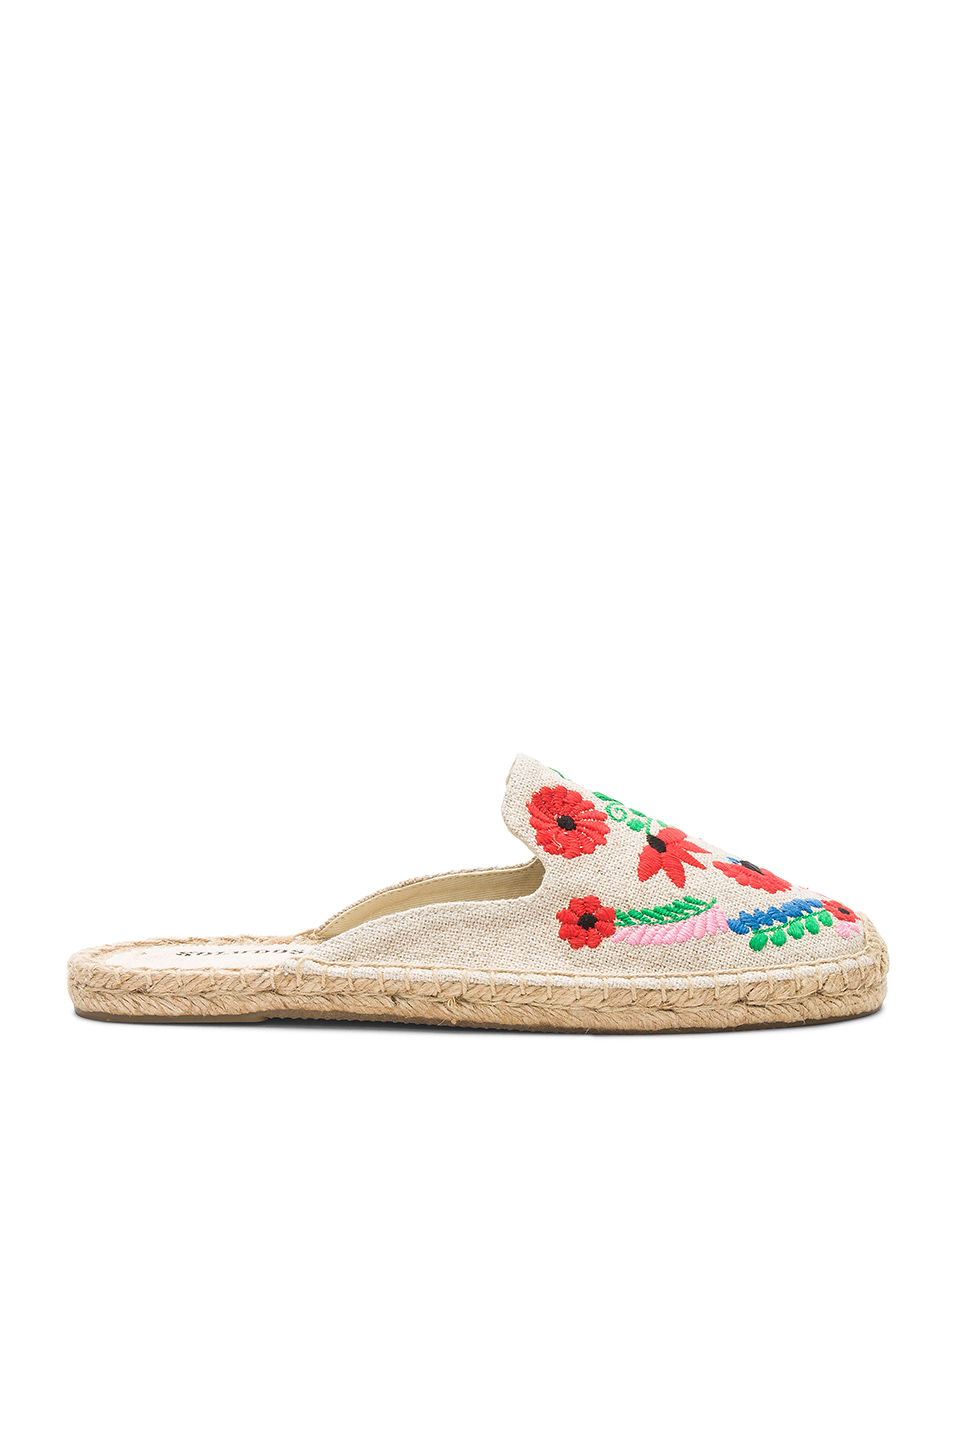 Soludos Ibiza Embroidered Mule in Sand Multi